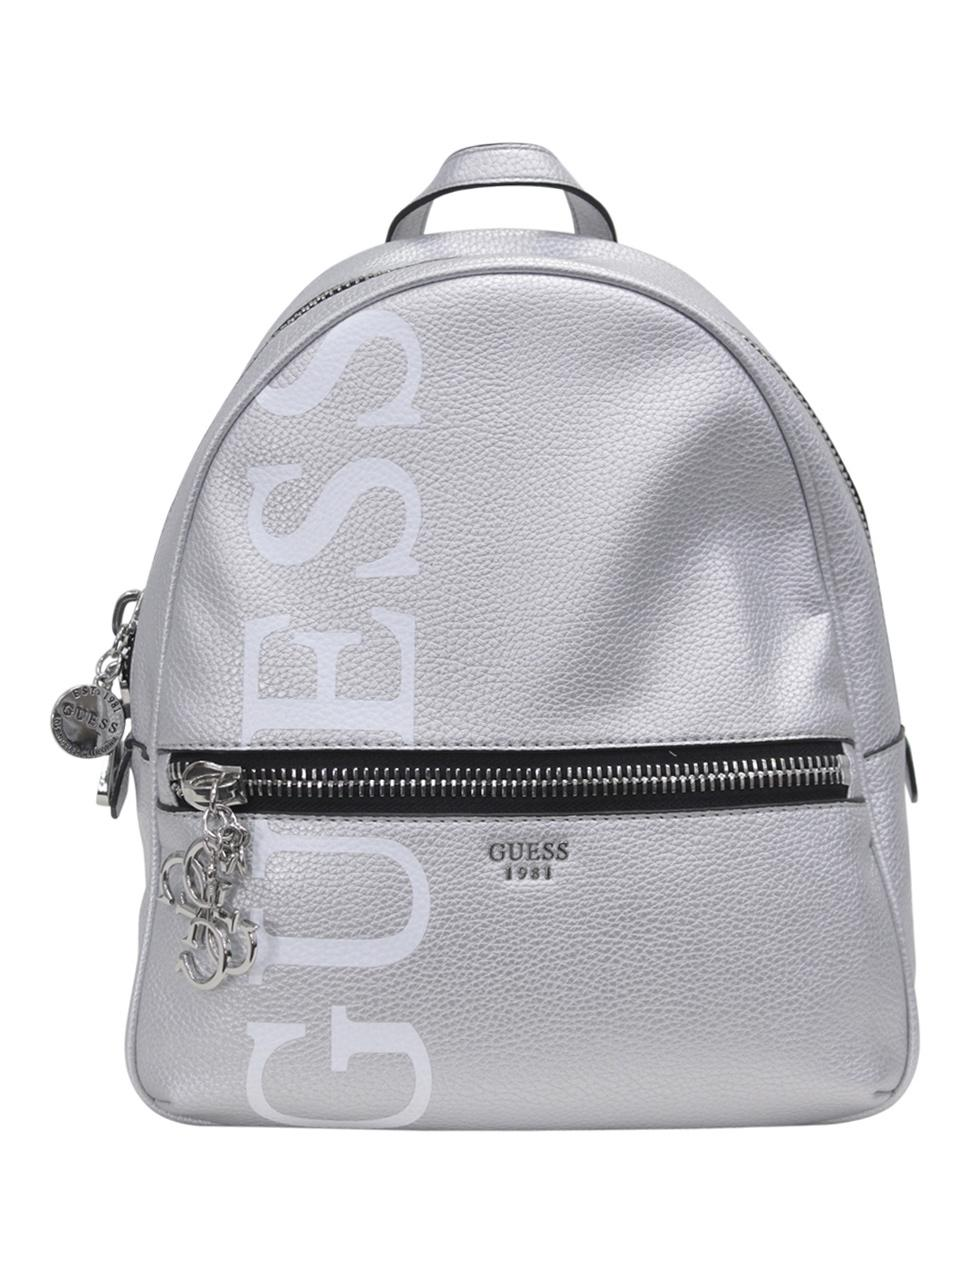 Guess Women s Urban Chic Large Backpack Bag by Guess 2d564a26db1b5